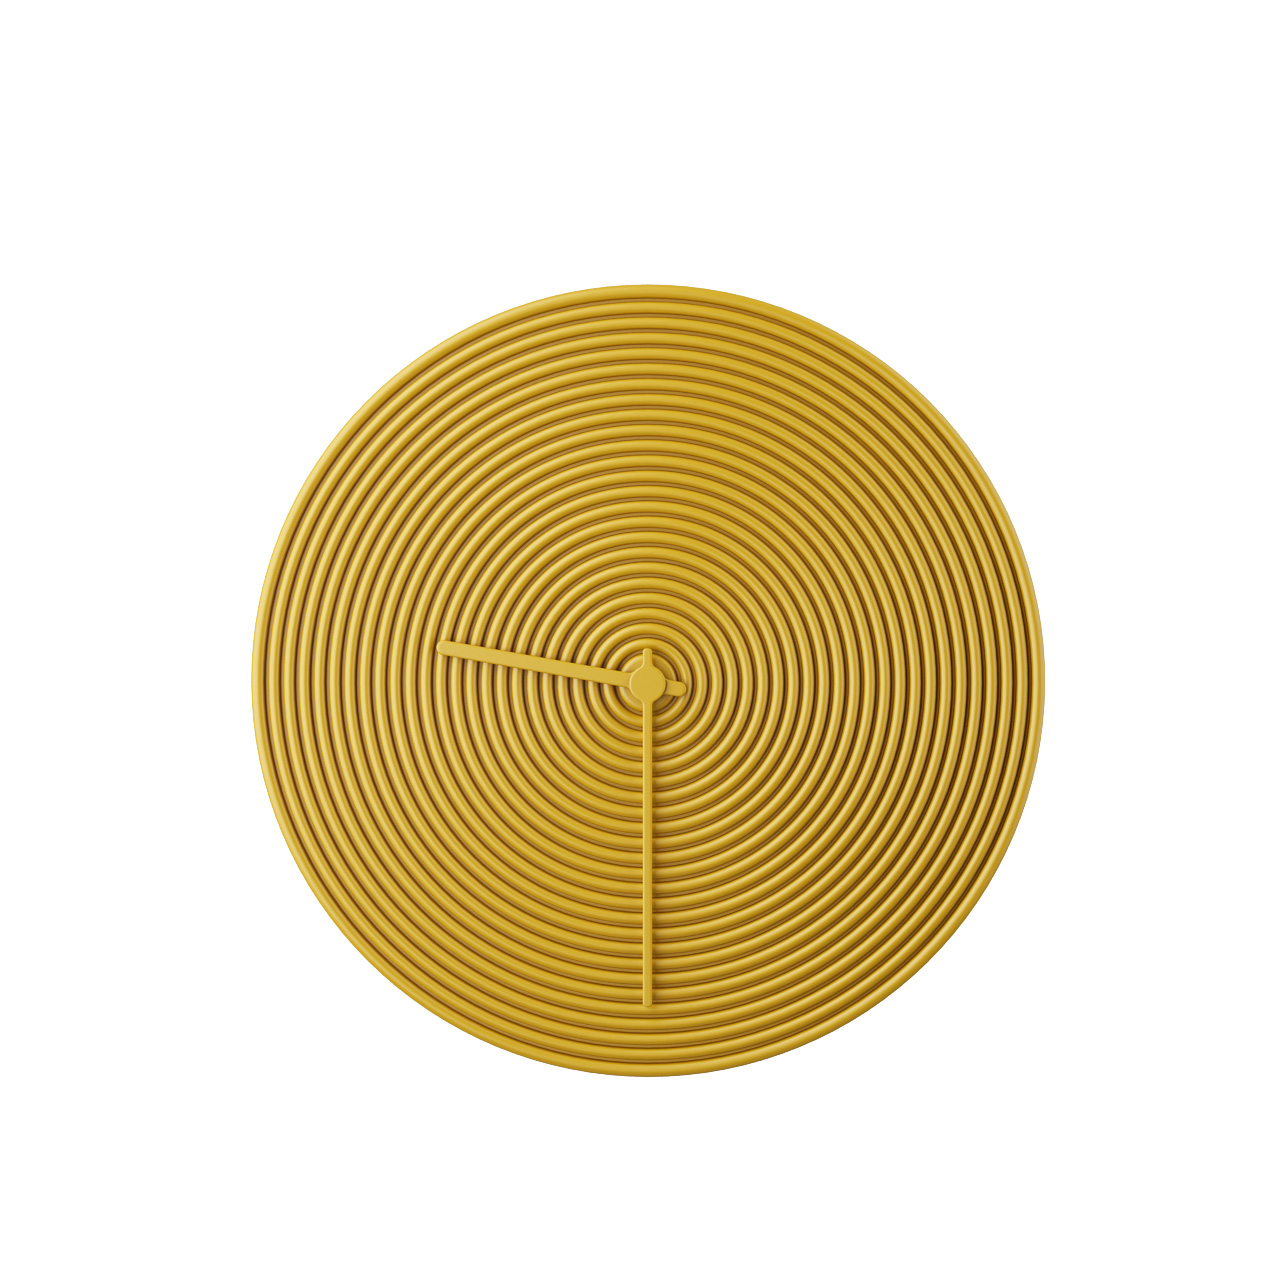 Ring Wall-mounted Ceramic Clock by Atipico